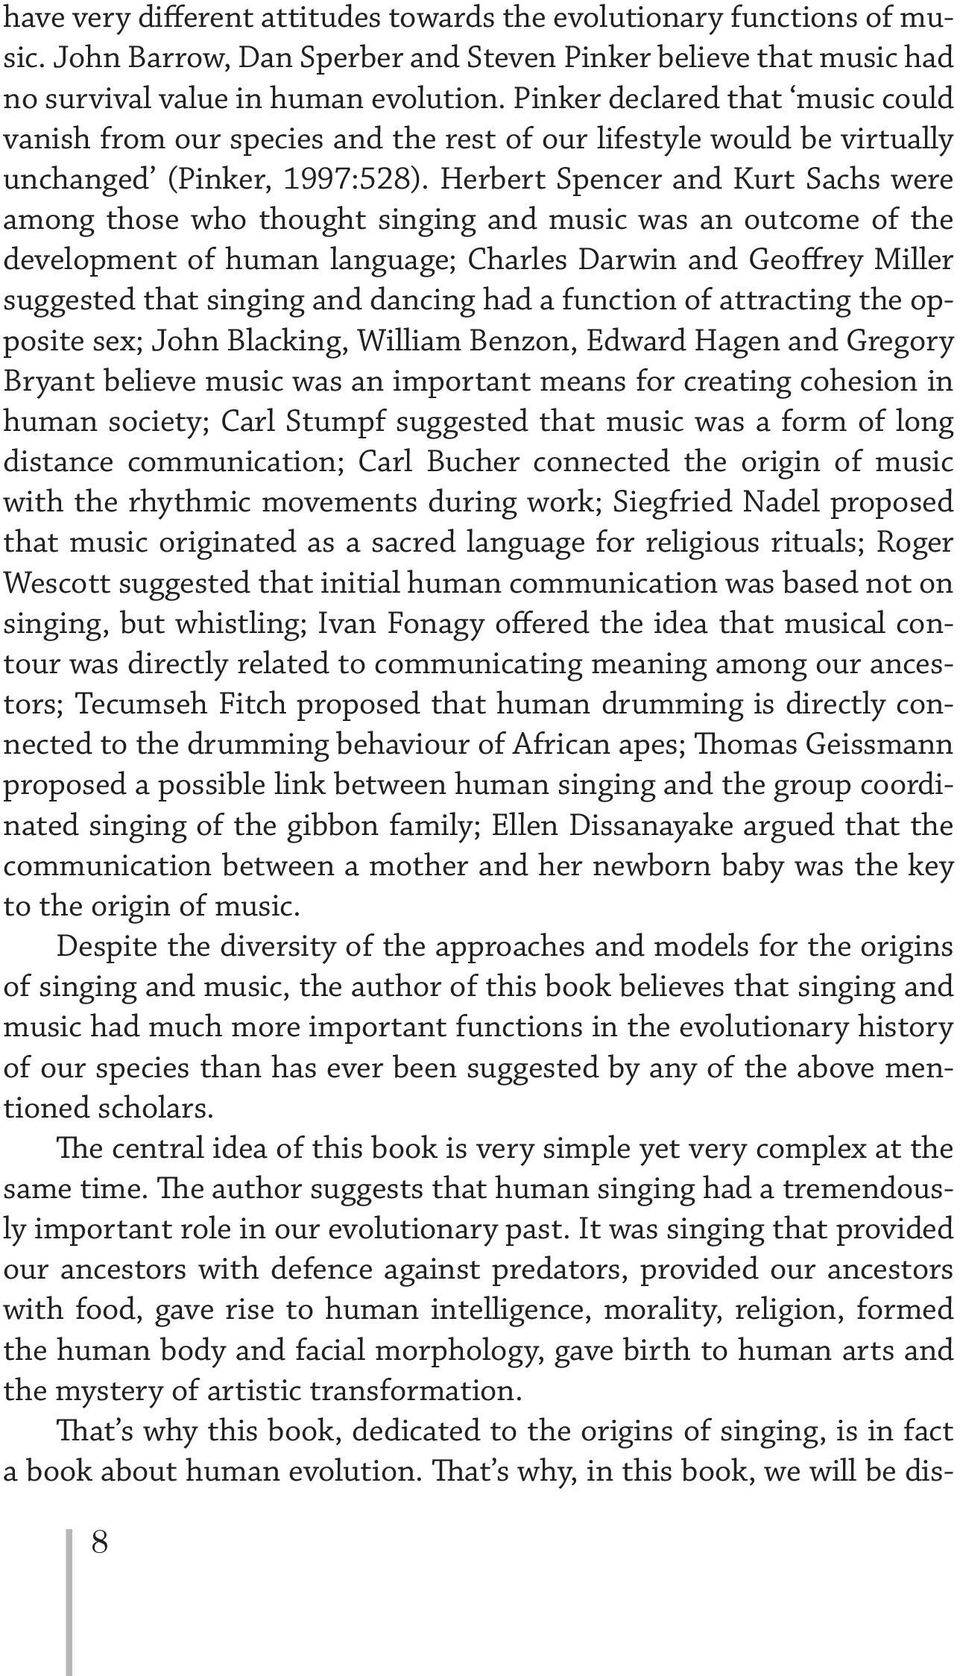 Herbert Spencer and Kurt Sachs were among those who thought singing and music was an outcome of the development of human language; Charles Darwin and Geoffrey Miller suggested that singing and